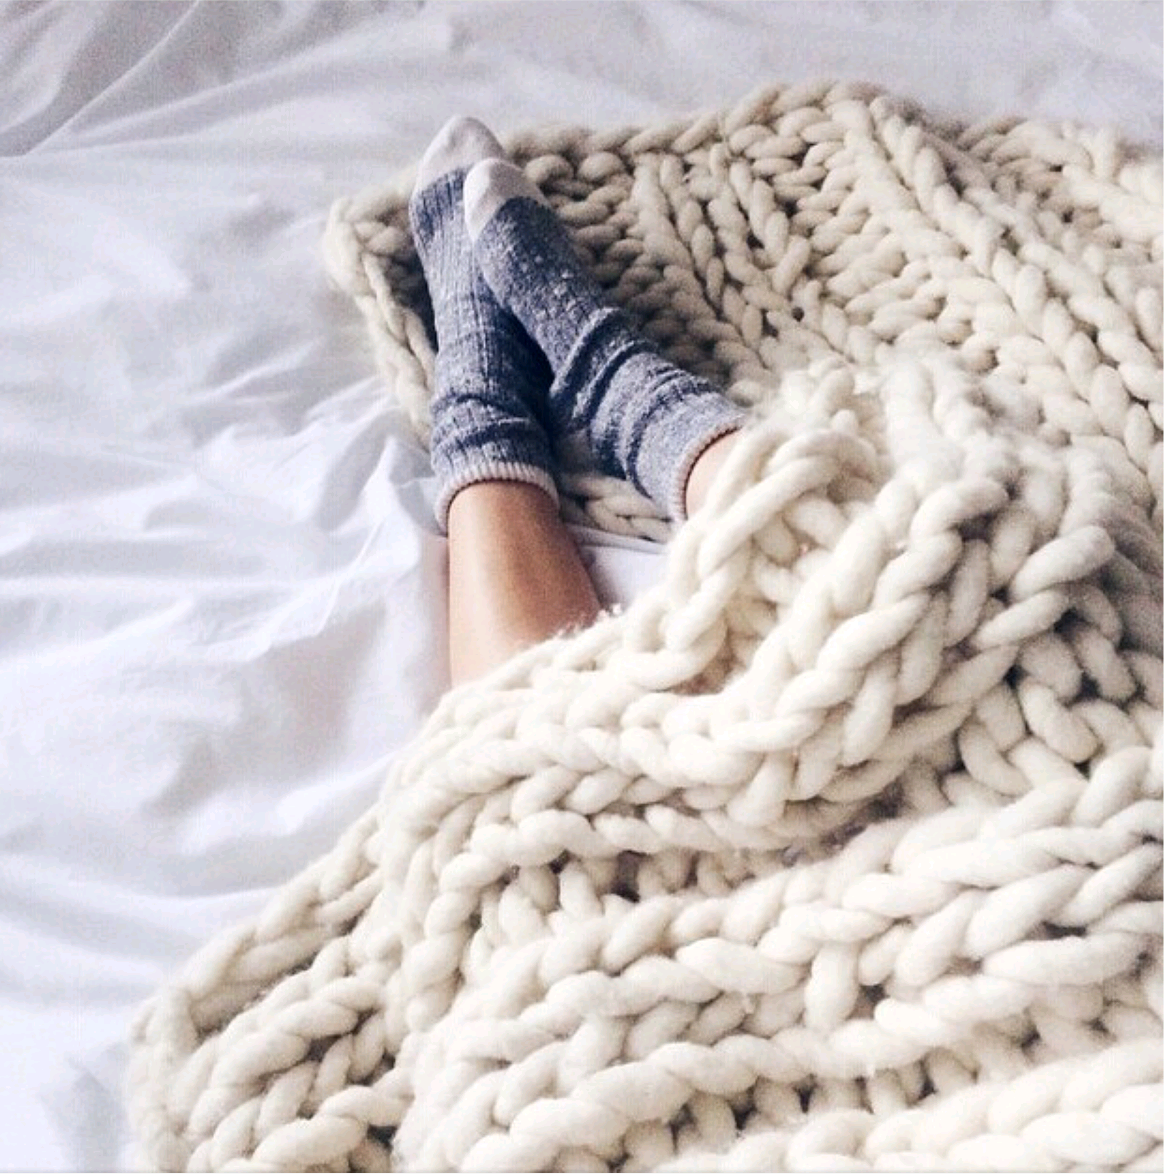 Forum on this topic: A knitted throw blanket for cozy nights , a-knitted-throw-blanket-for-cozy-nights/